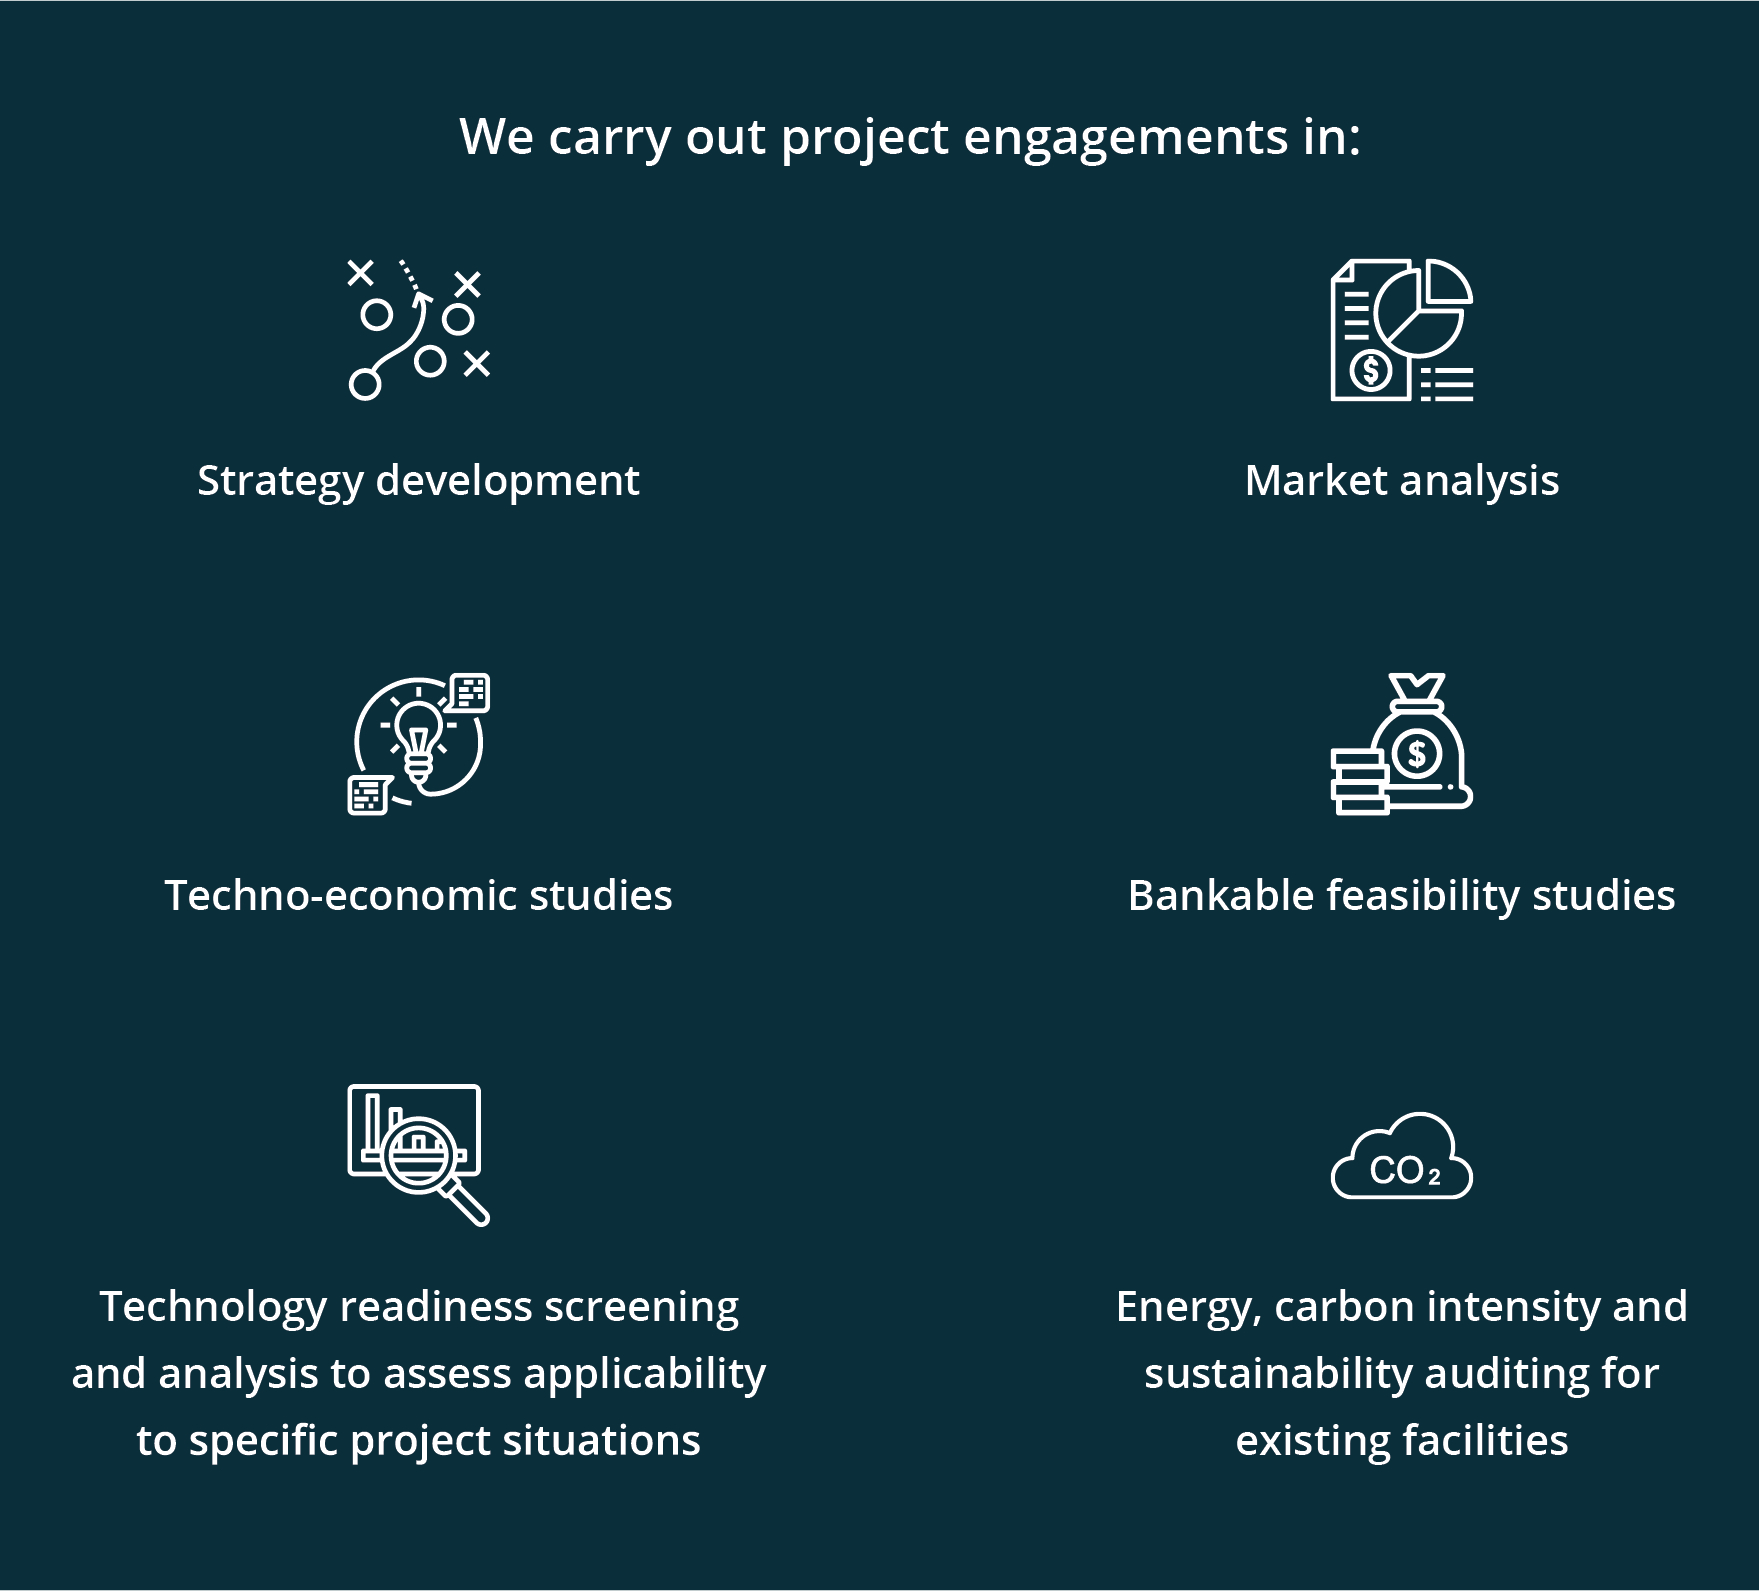 fcw creas project engagements v2